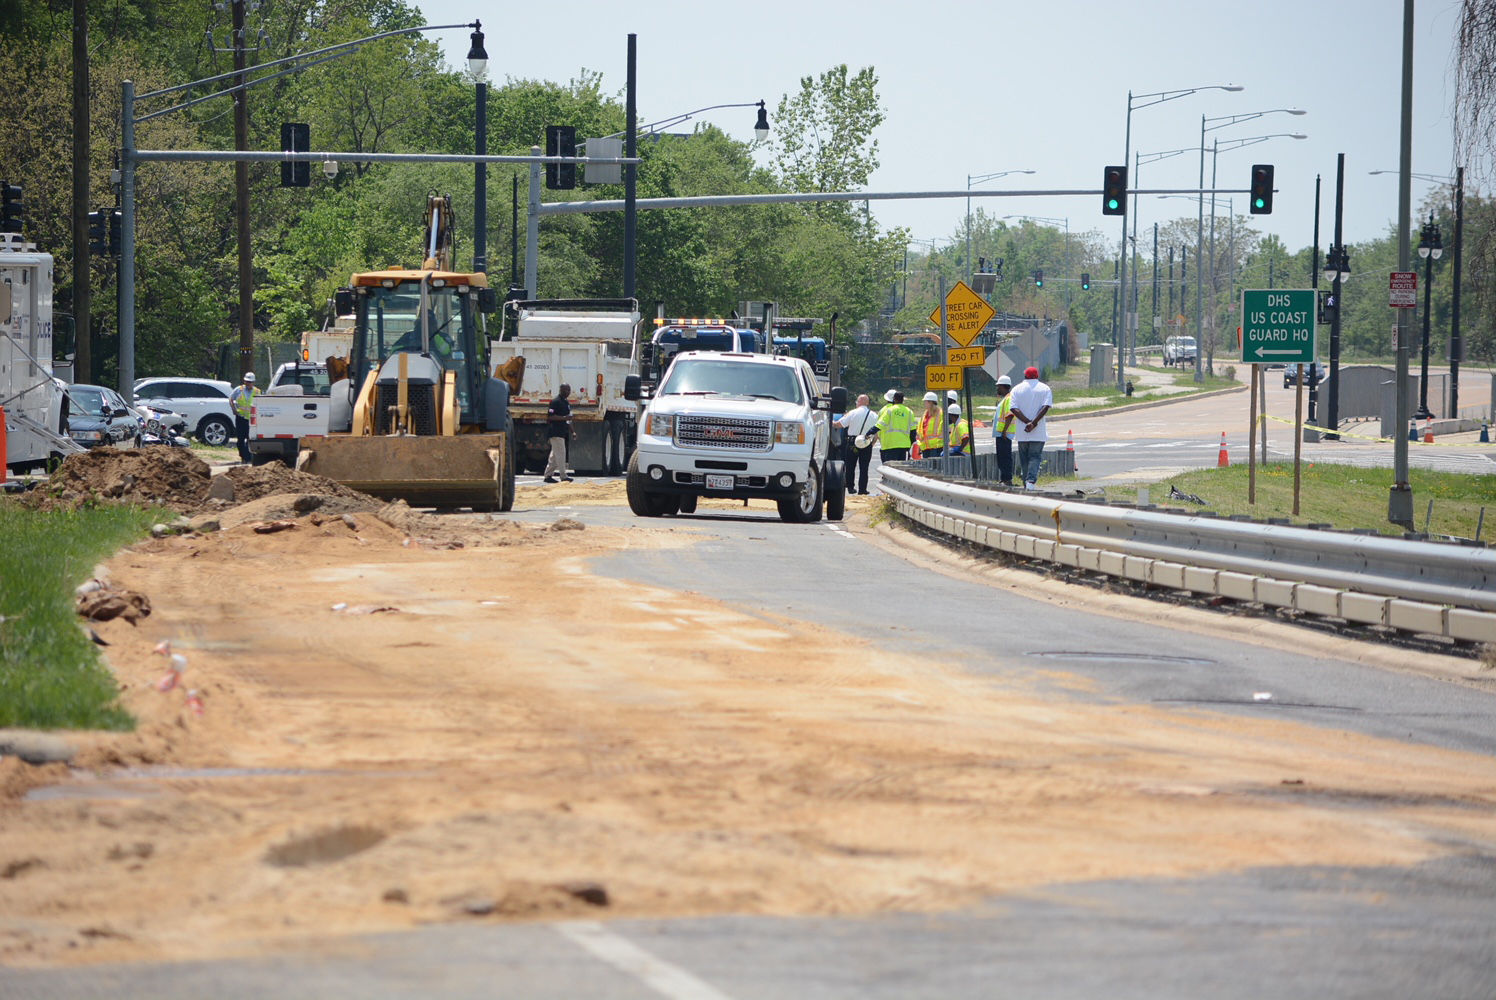 Crews hauled in sand to stop the spread of the spilled fuel. (WTOP/Dave Dildine)